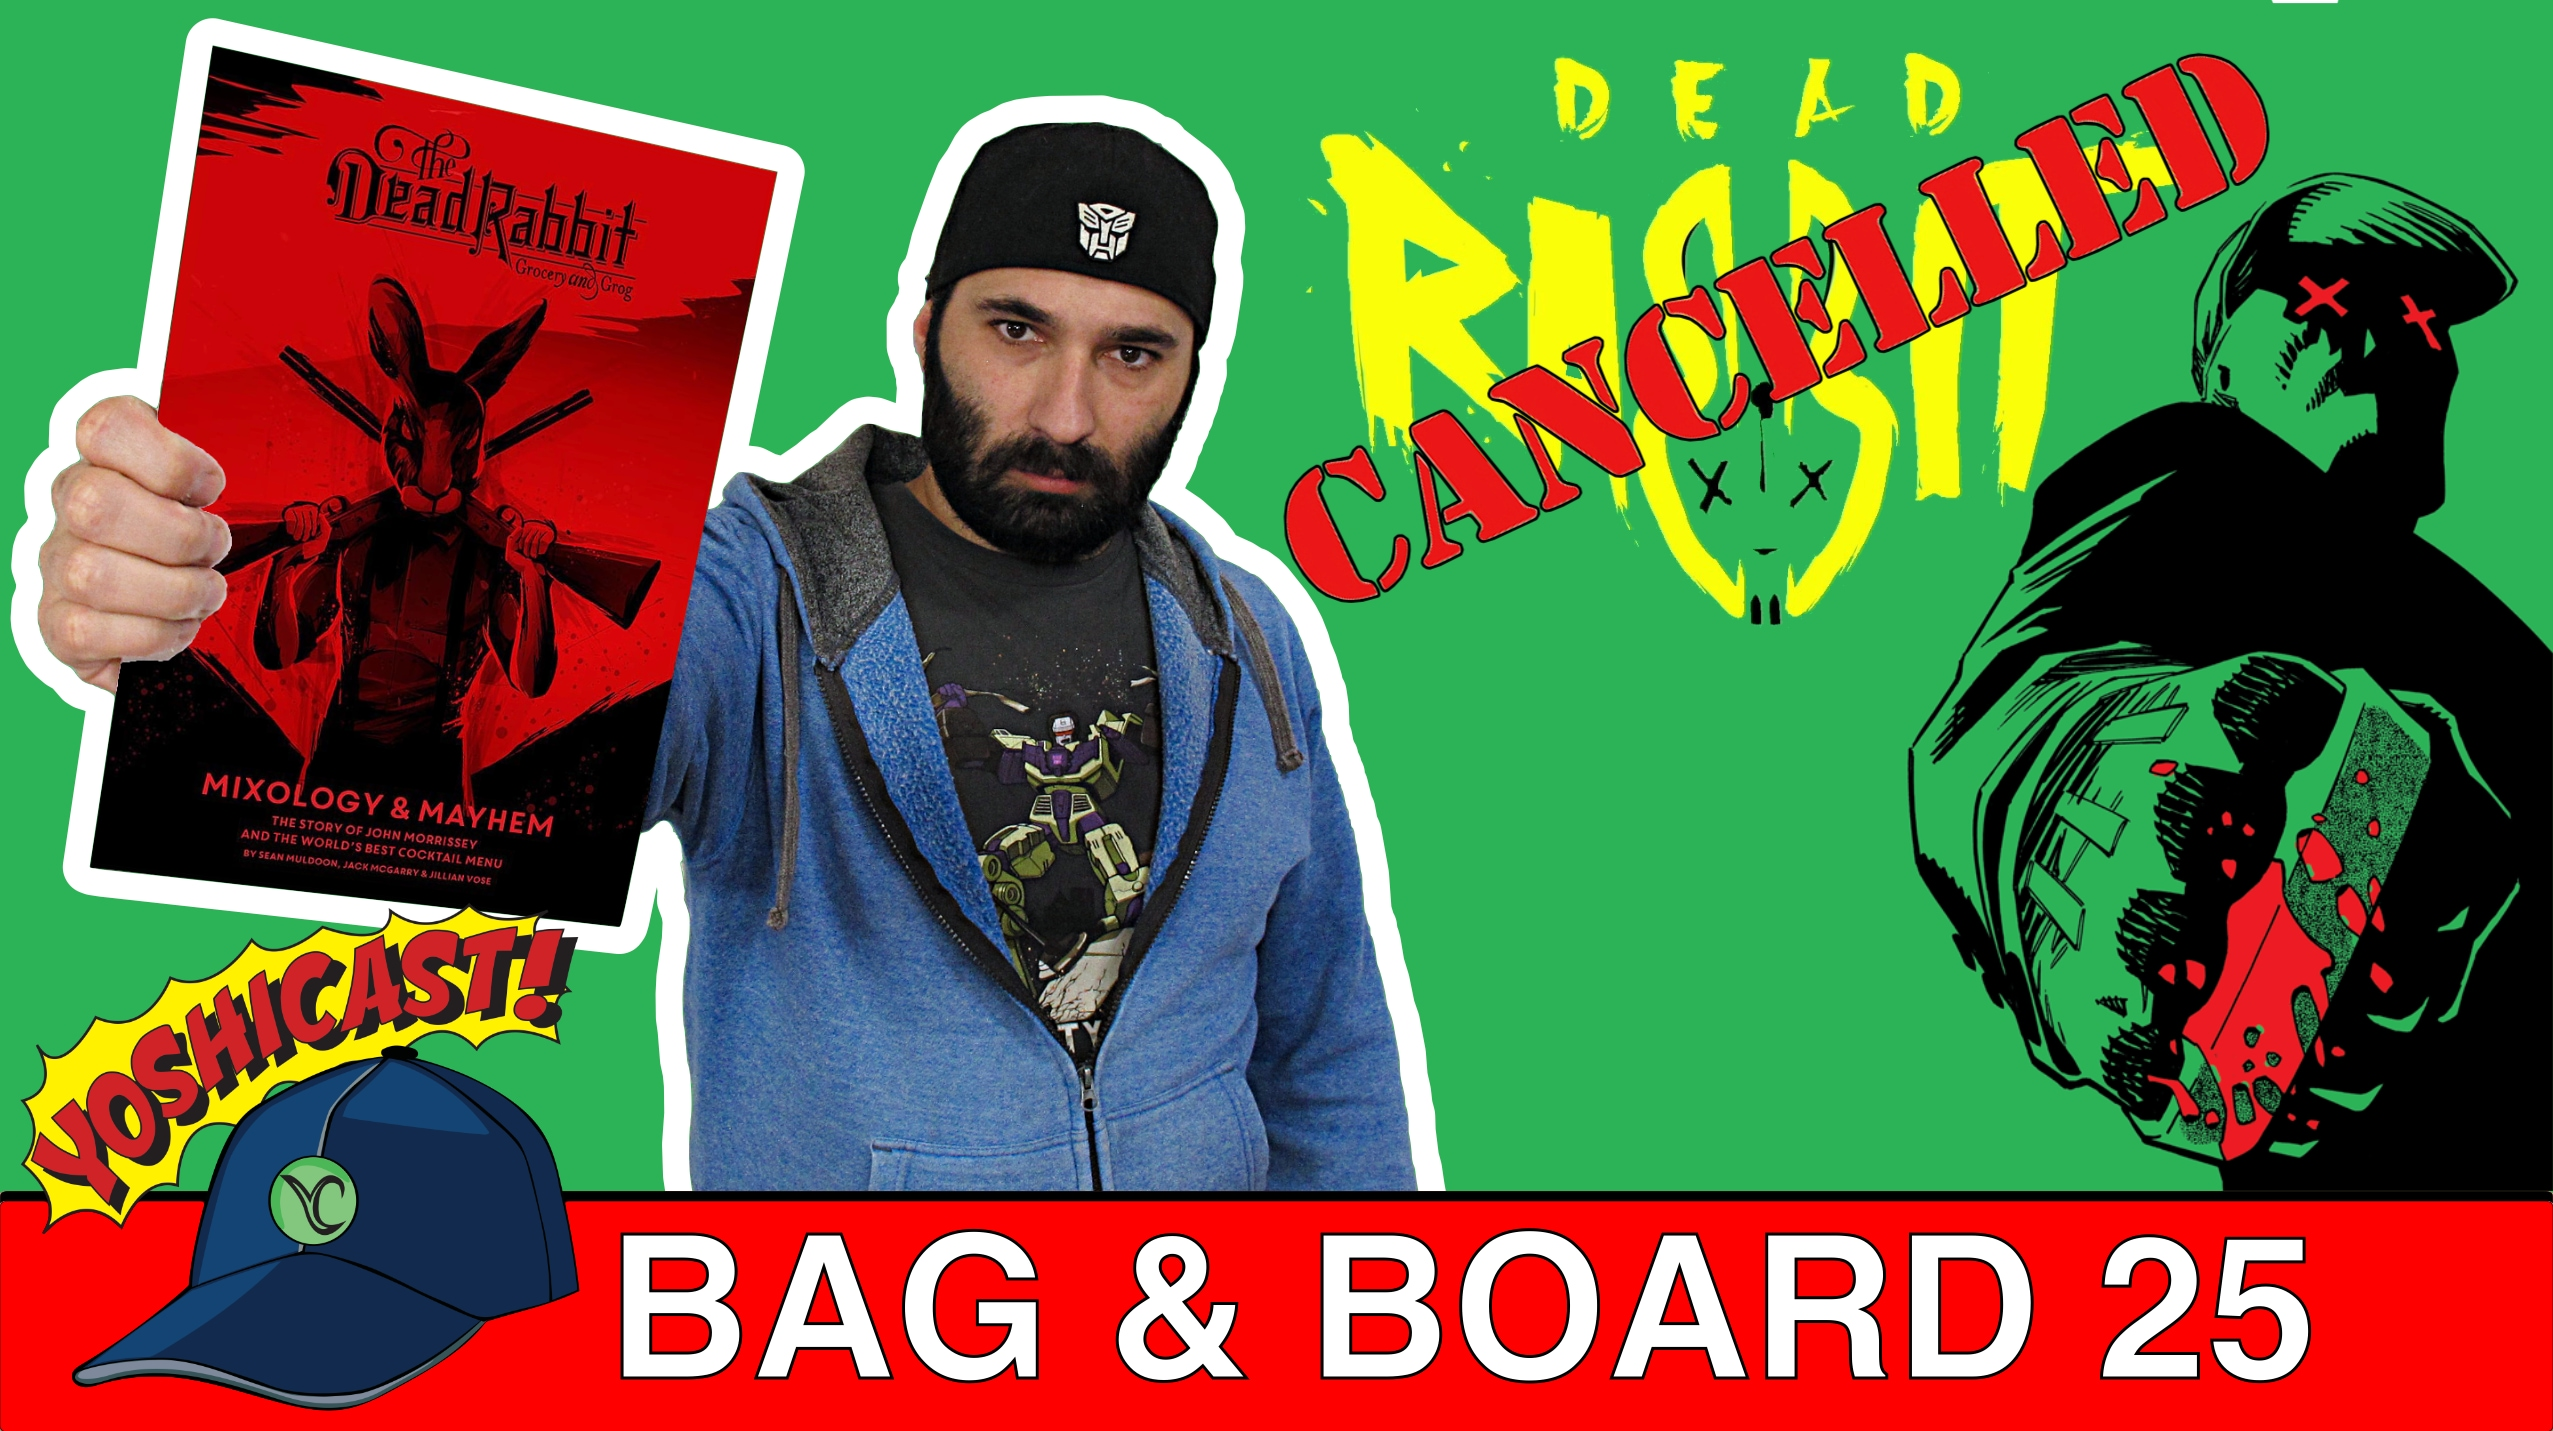 Bag & Board 25 | Dead Rabbit No More, Sleepwalker, Spider-Man, Mars Attacks, GoBots